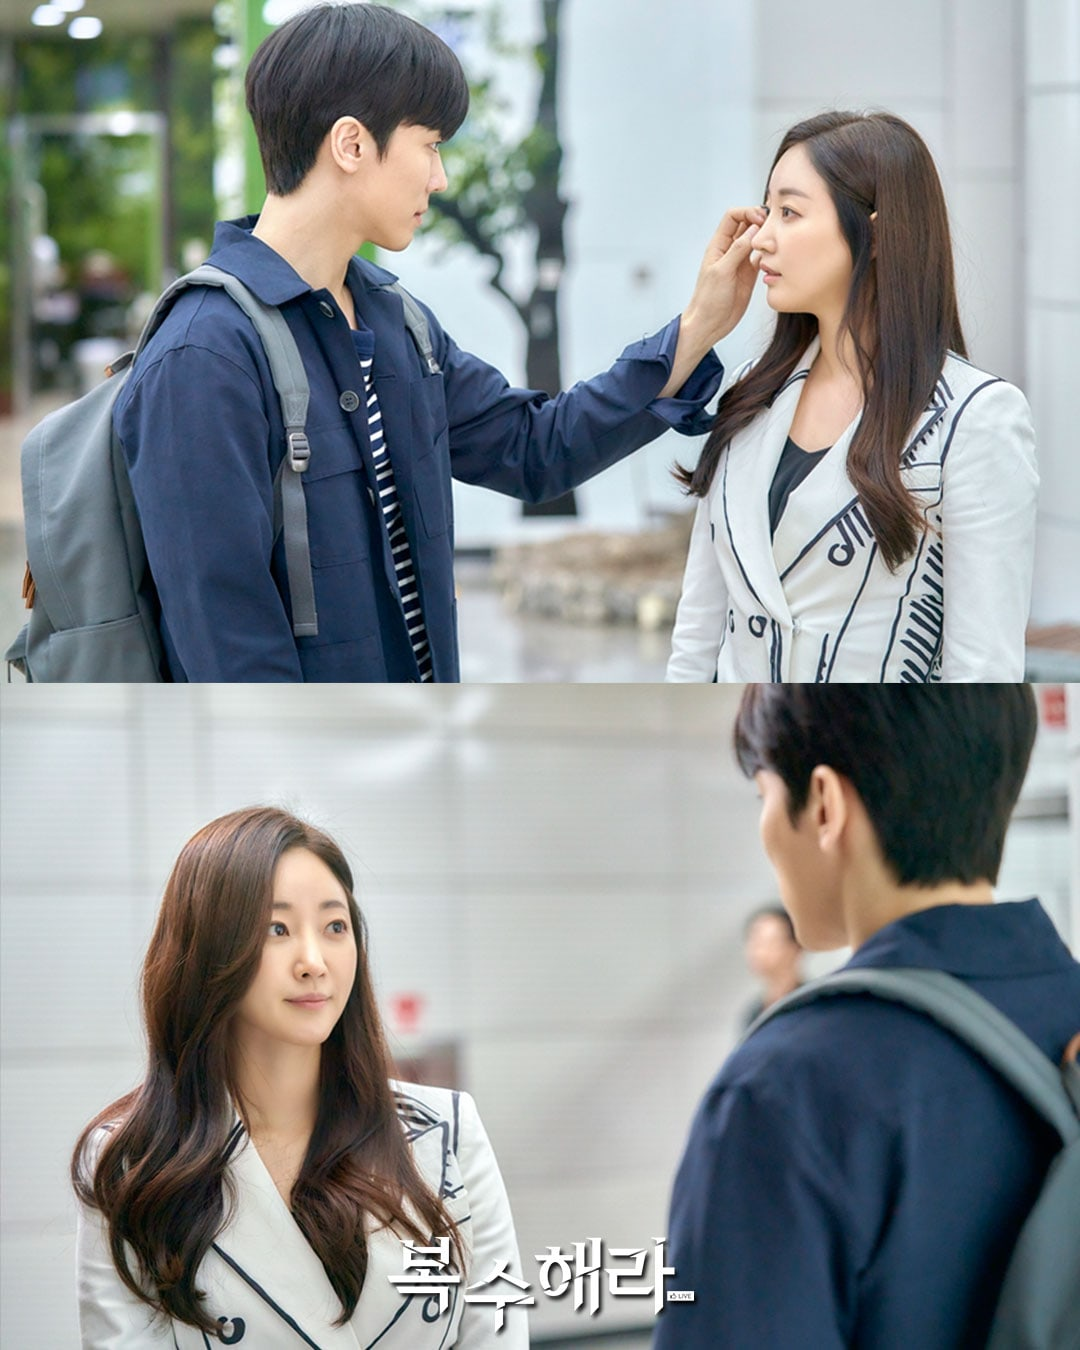 """""""The Goddess of Revenge"""": Jung Eui Jae is a former idol with indecipherable intentions towards Kim Sa Rang"""